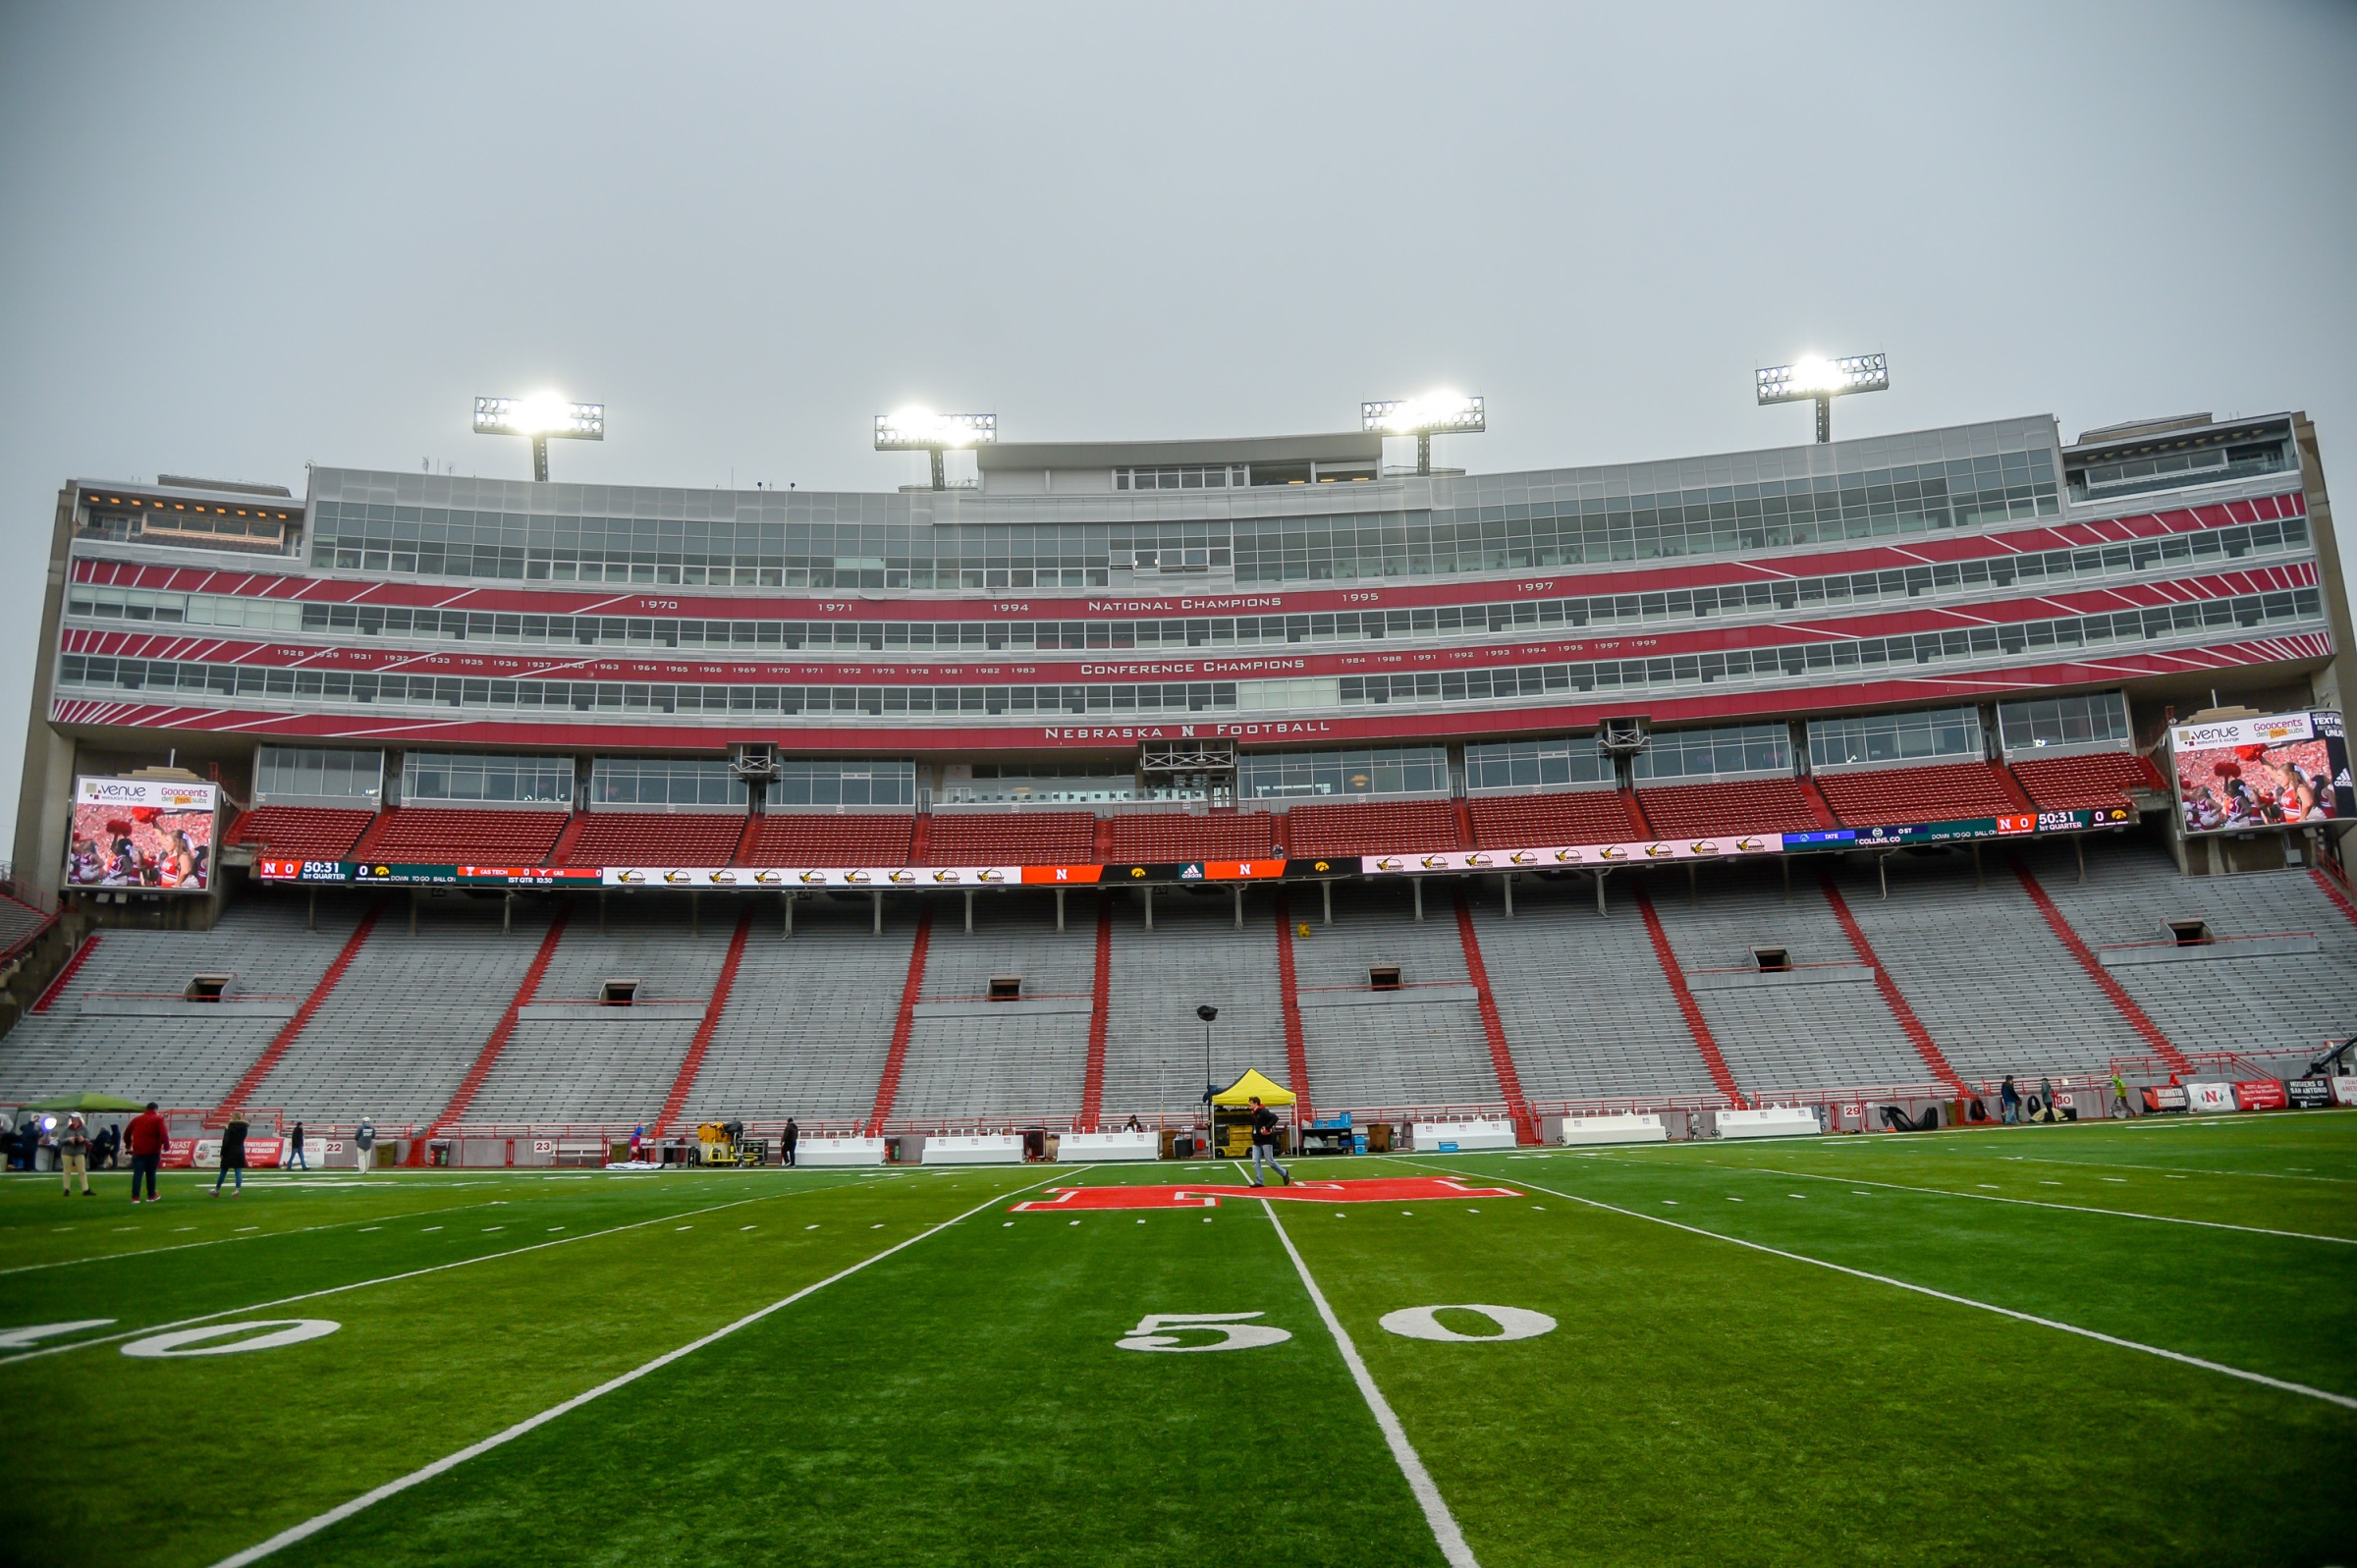 A sideline view of Nebraska's Memorial Stadium, where the Defector Idiots hope to achieve ultimate glory in the sport of college football